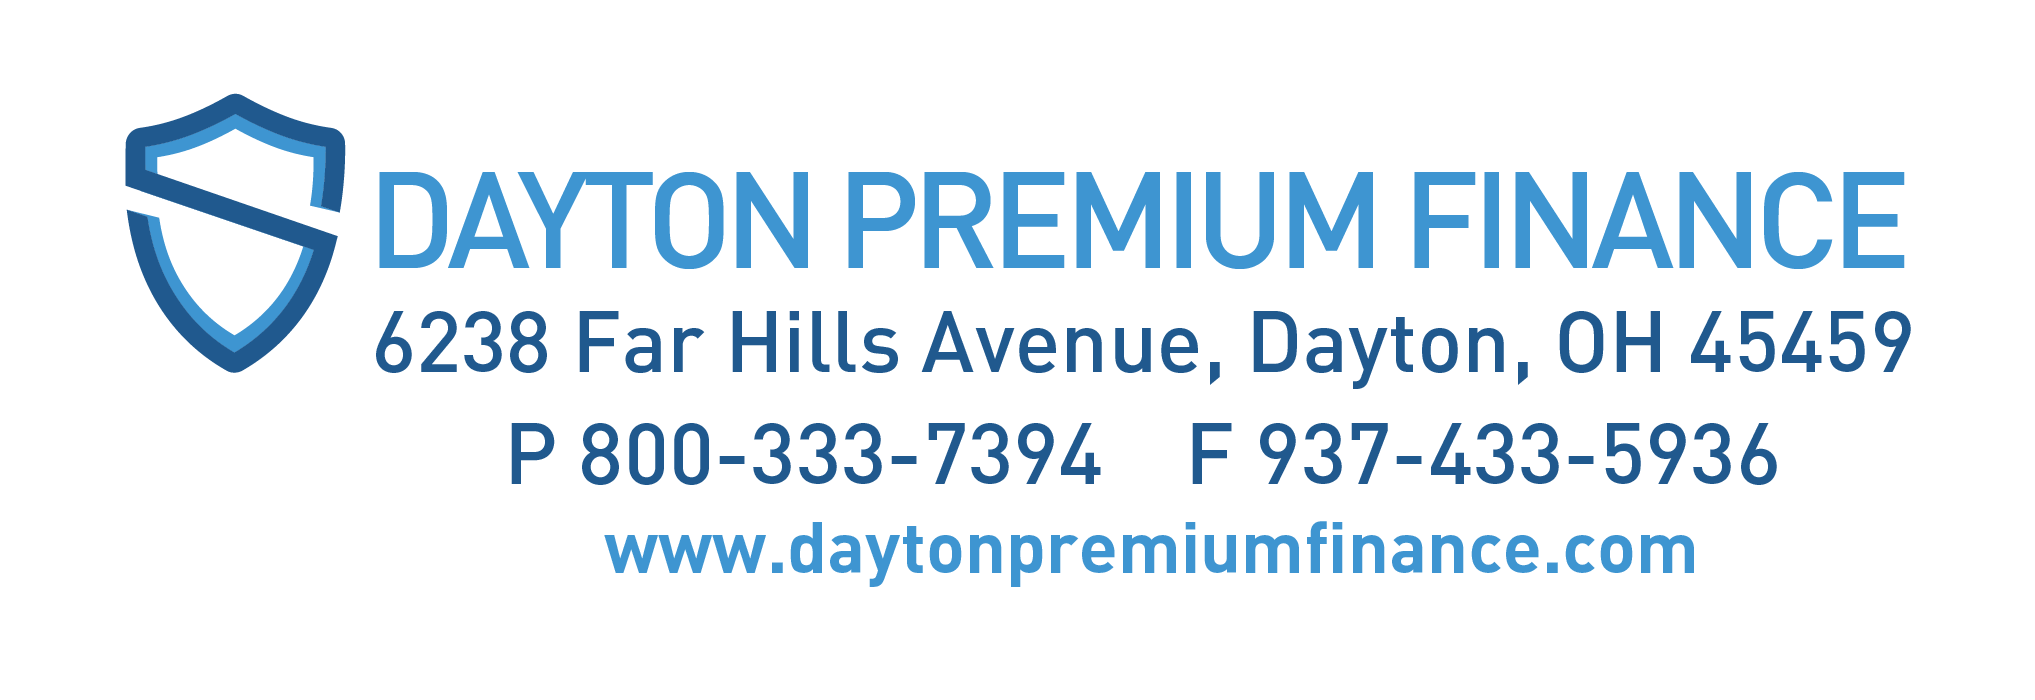 Dayton Premium Finance Logo